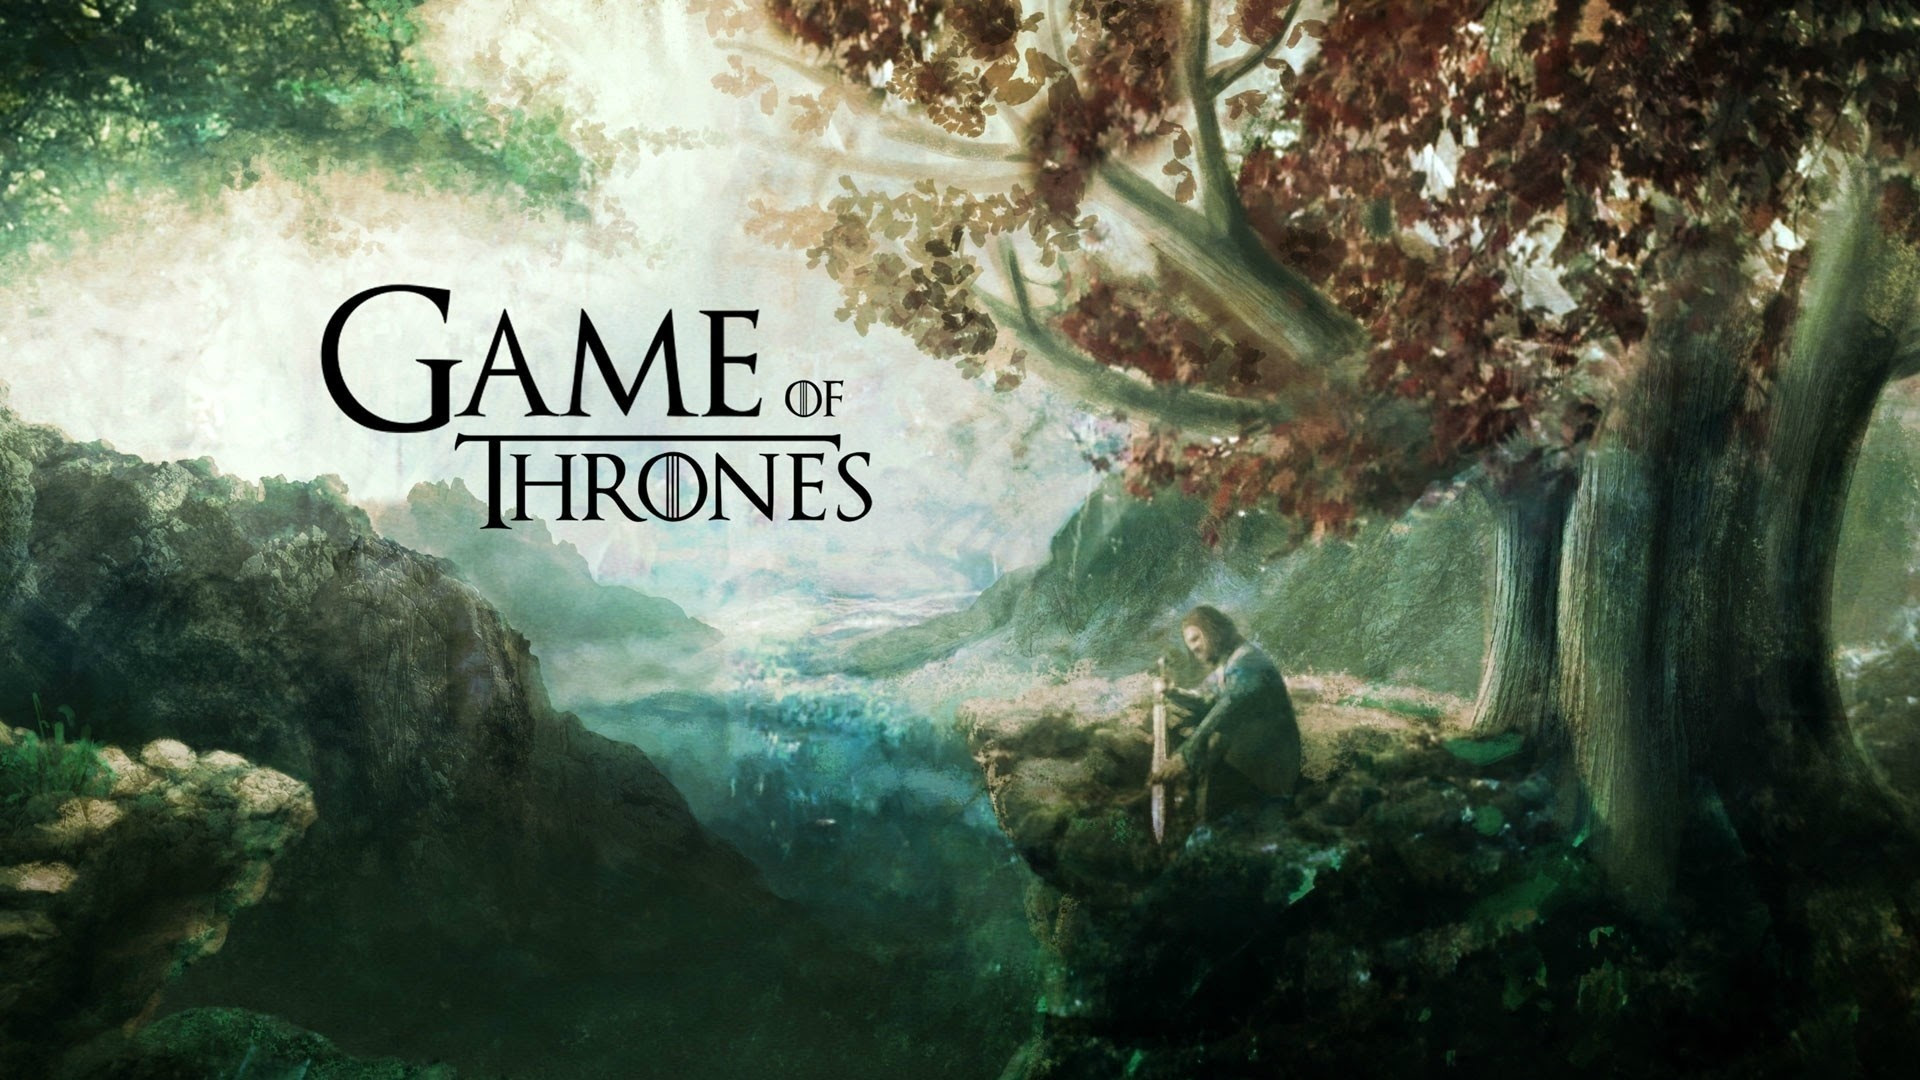 Game Of Thrones Wallpaper 1920x1080 60 Images